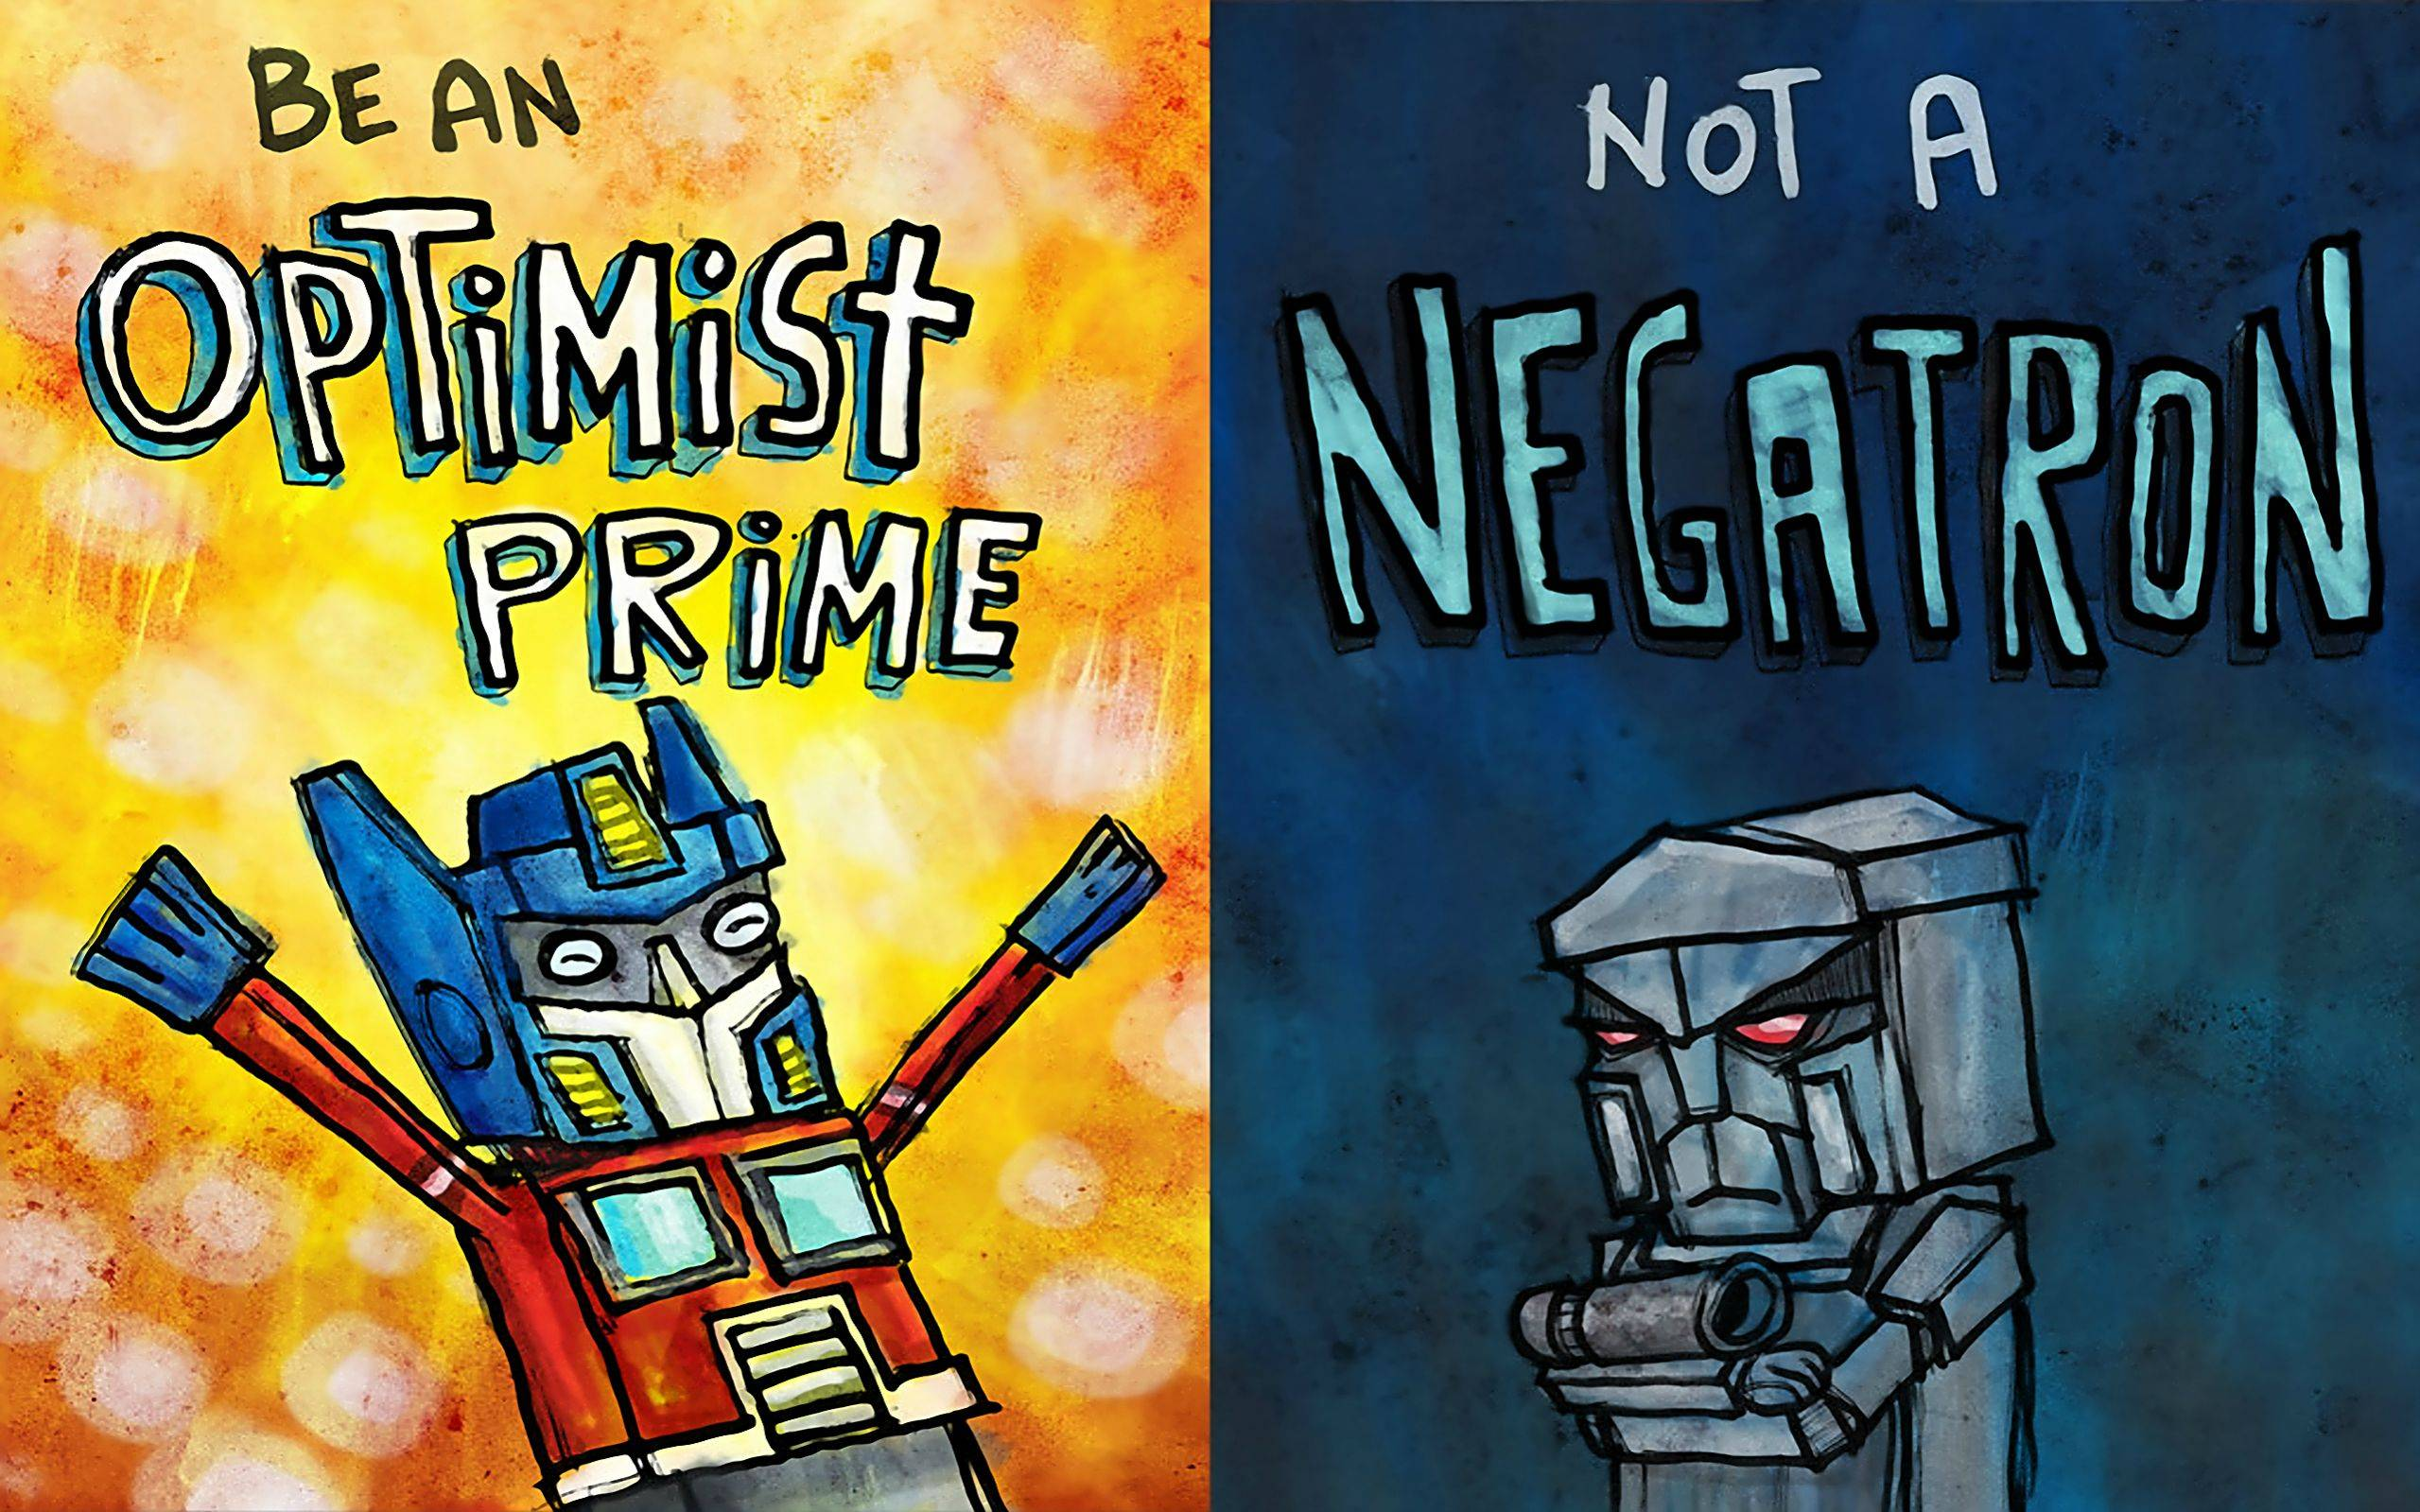 Be an optimist prime not a negatron 2560 x 1600  wallpapers